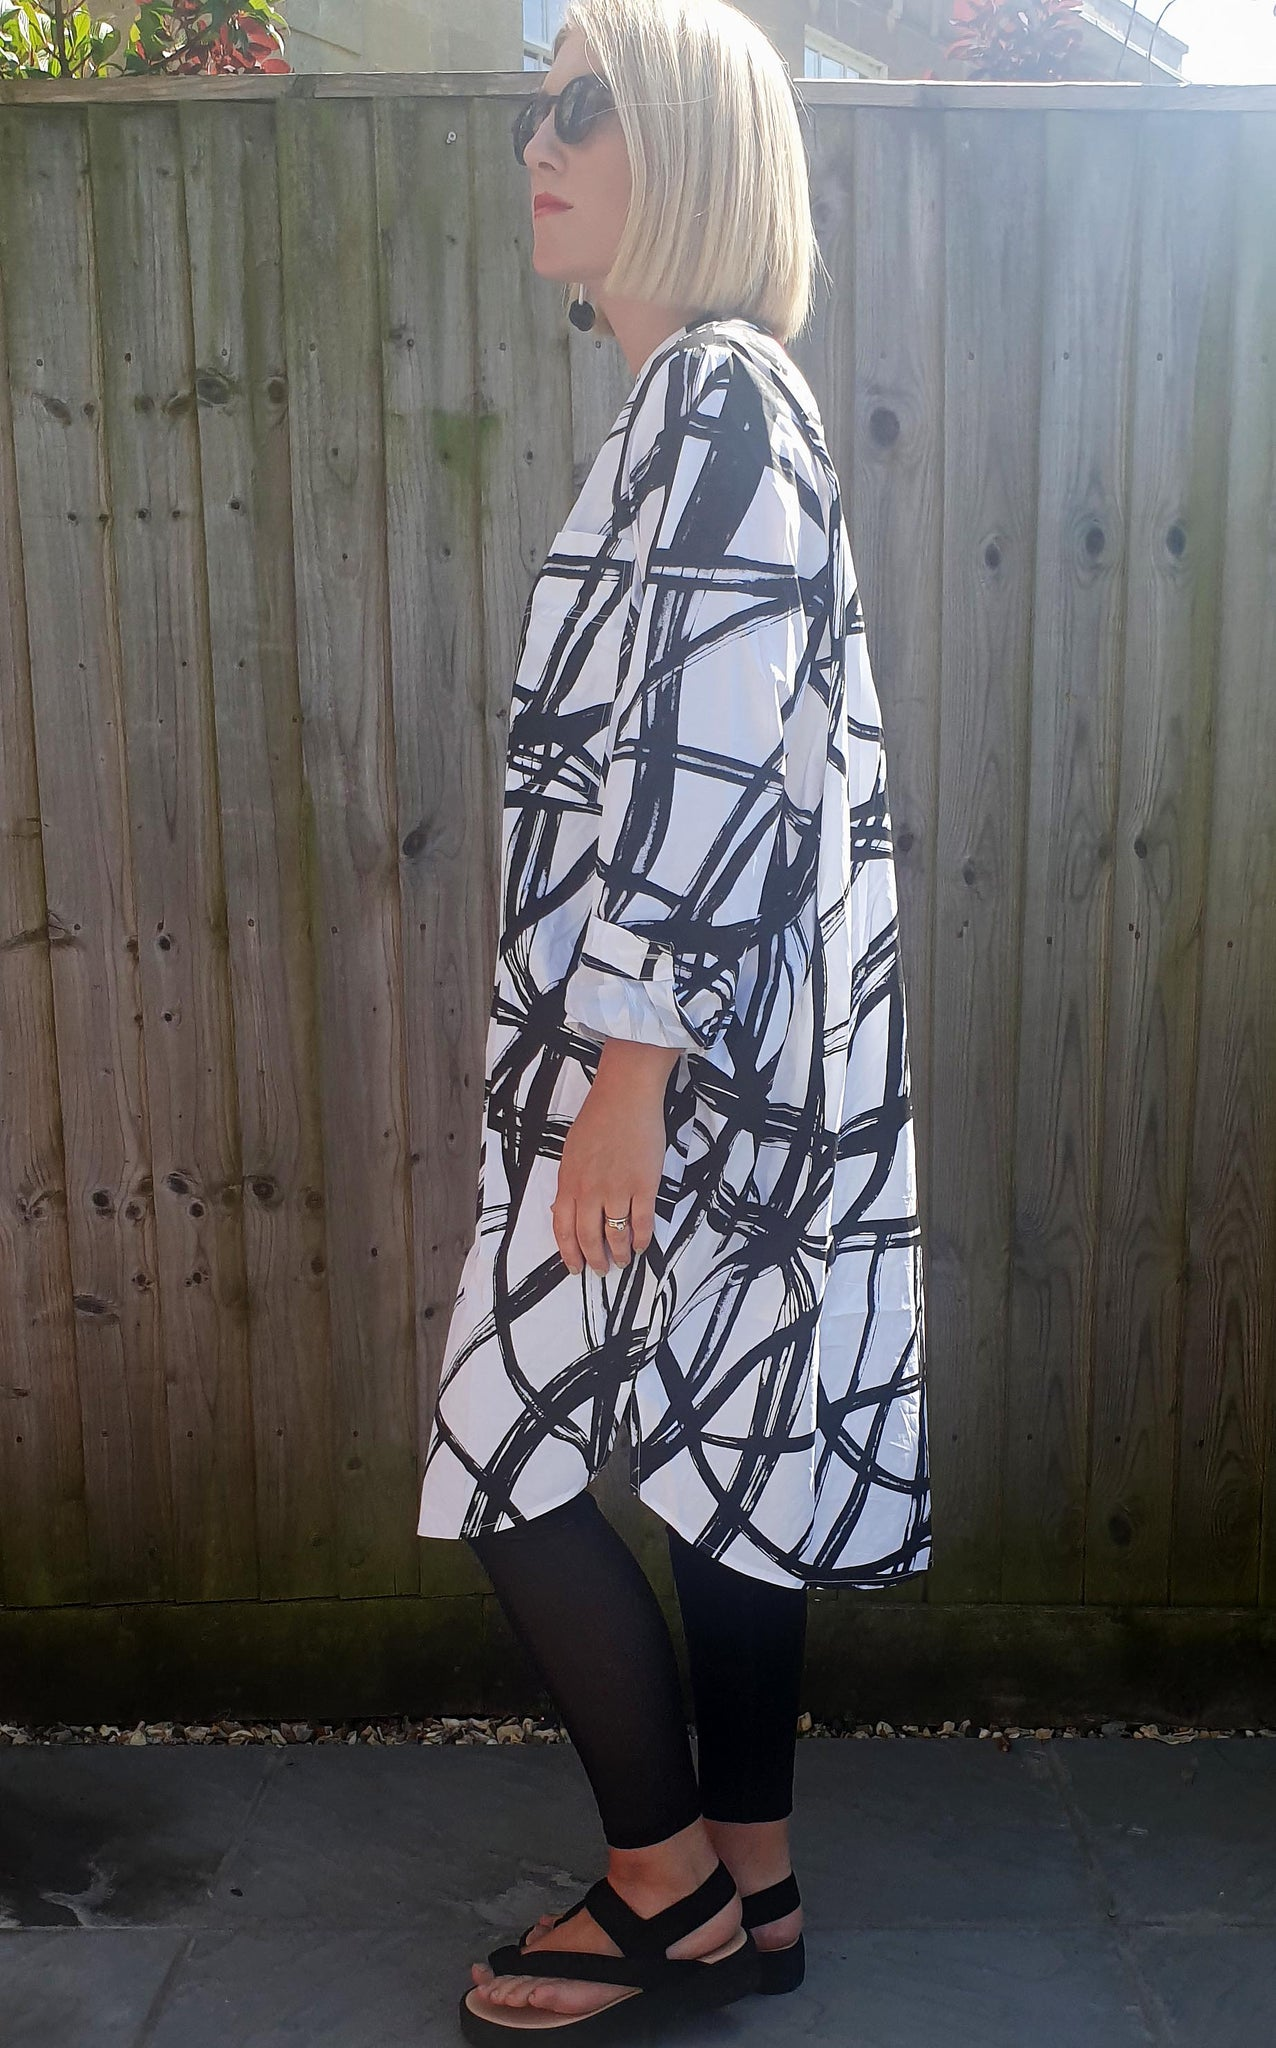 THANNY Patterned Shirt Dress - Monochrome, Dresses, Thanny, Blue Women - Blue Women's Clothing